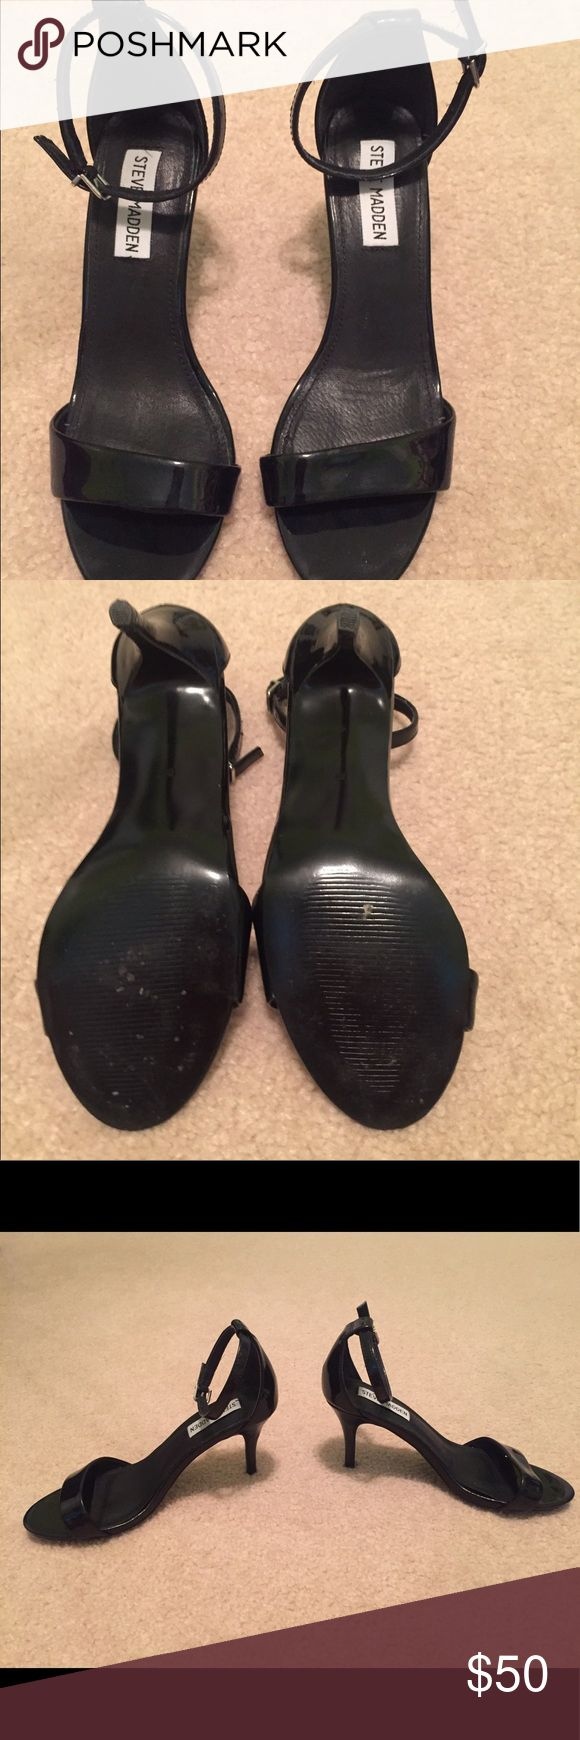 Steve Madden Black Heels Very lightly used, excellent condition, ankle straps are a little small Steve Madden Shoes Heels